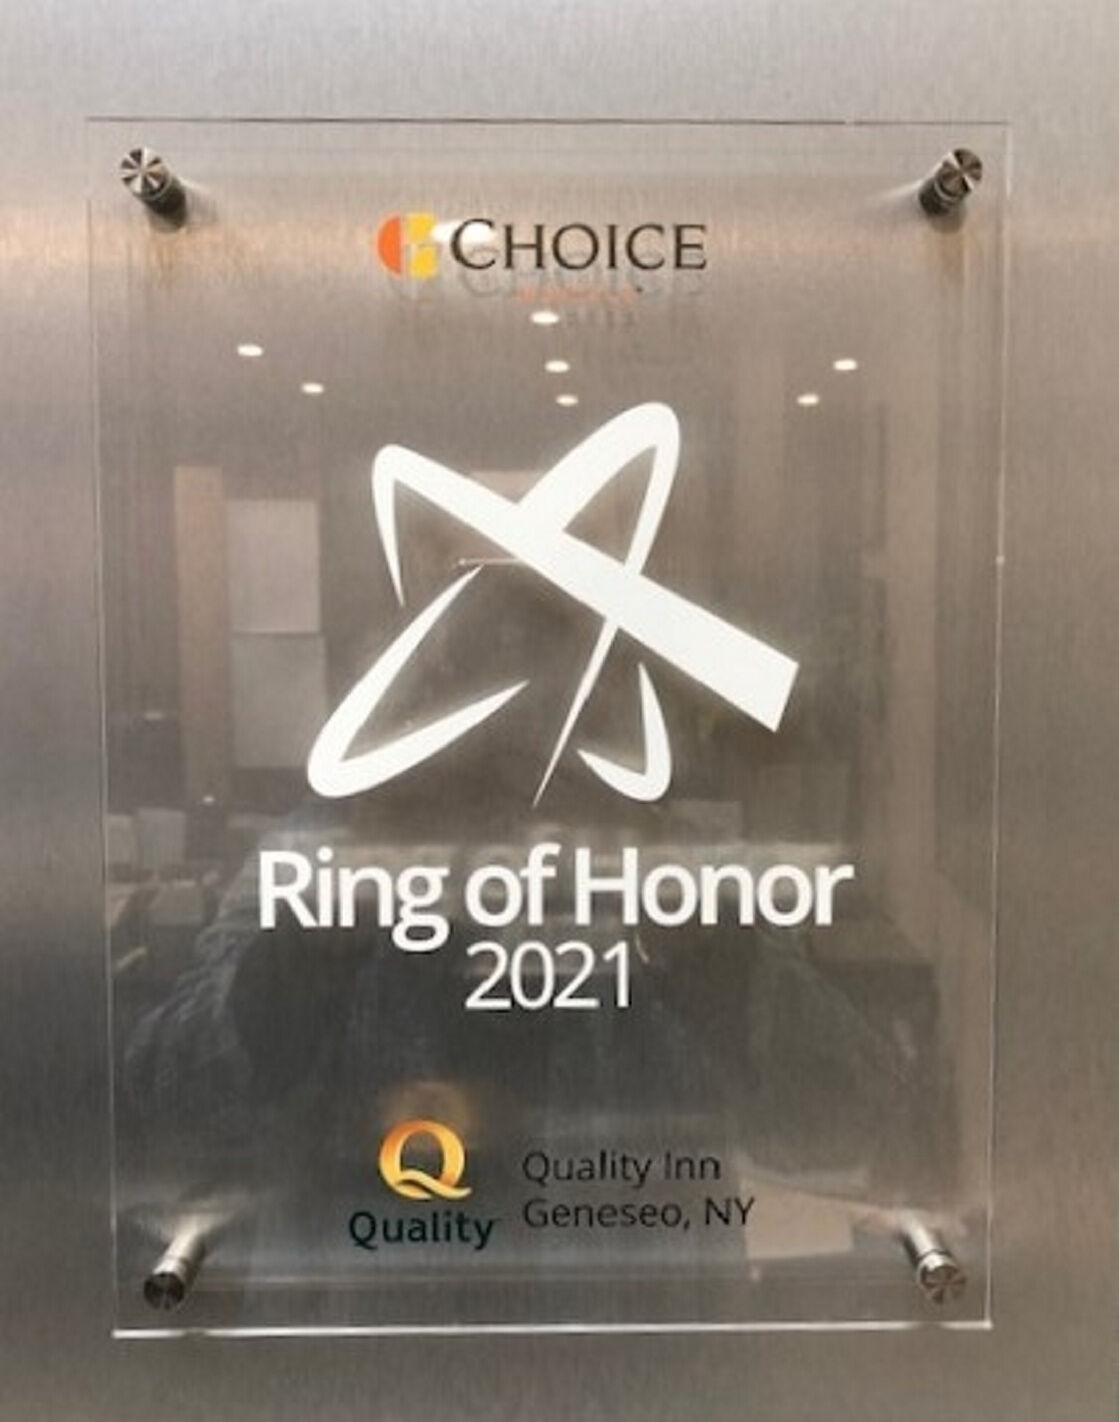 Quality Inn named to 'Ring of Honor'